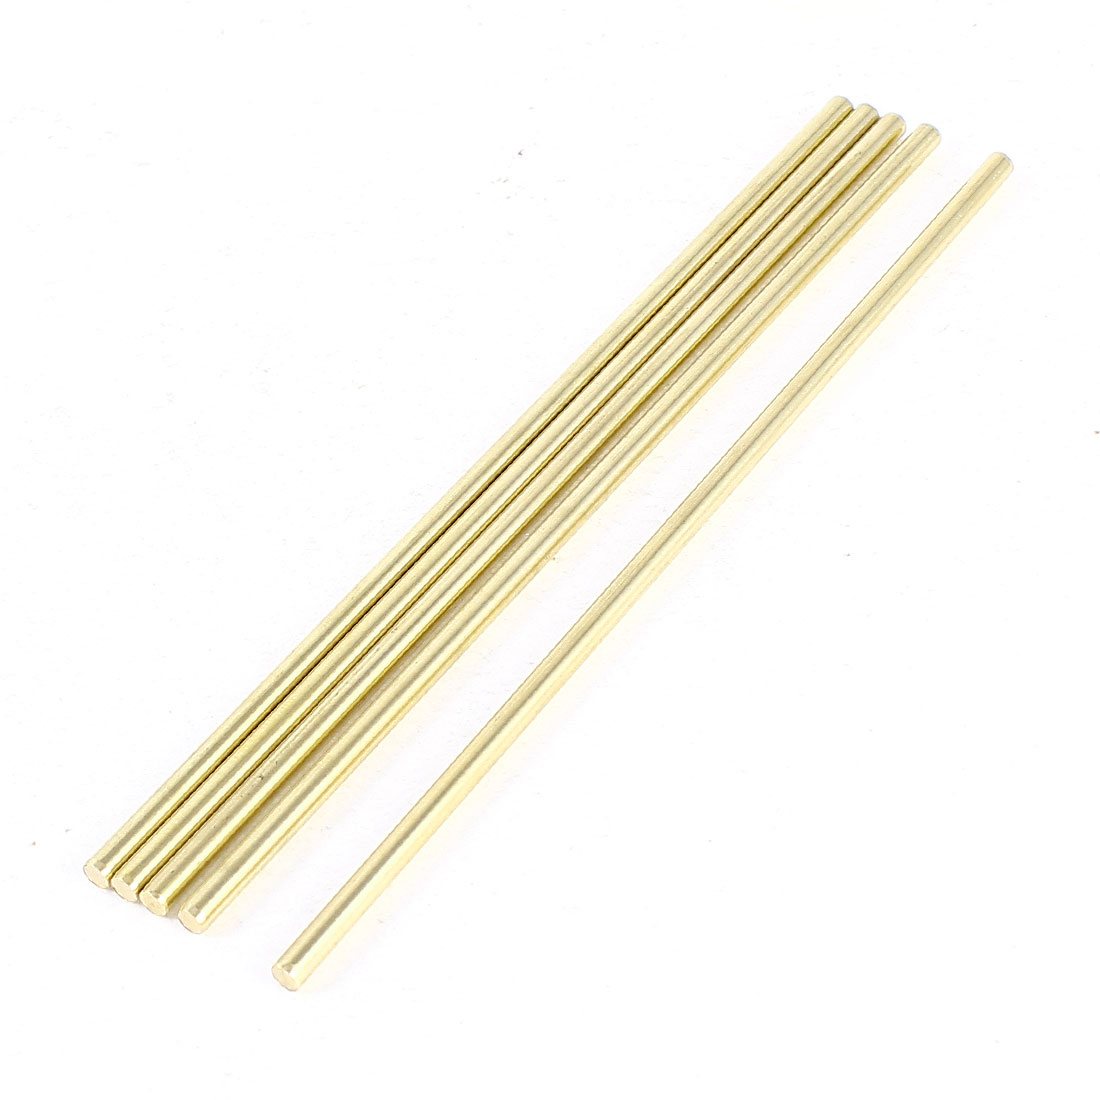 5 Pcs Car Helicopter Model Toy DIY Brass Axles Rod Bars 3mm x 120mm